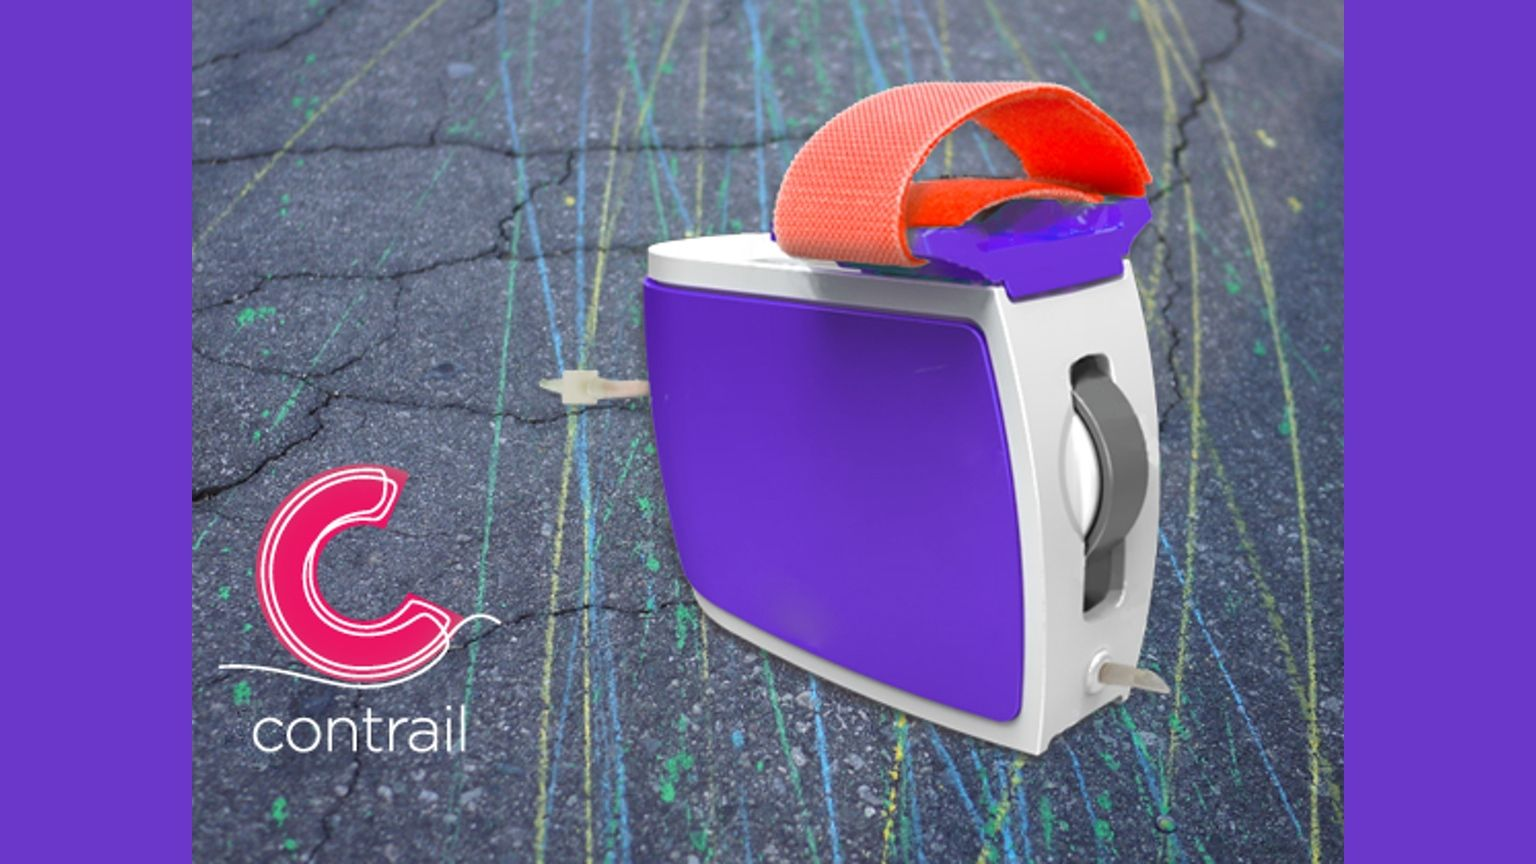 Contrail - Bicycle Community Tool by ULICU — Kickstarter